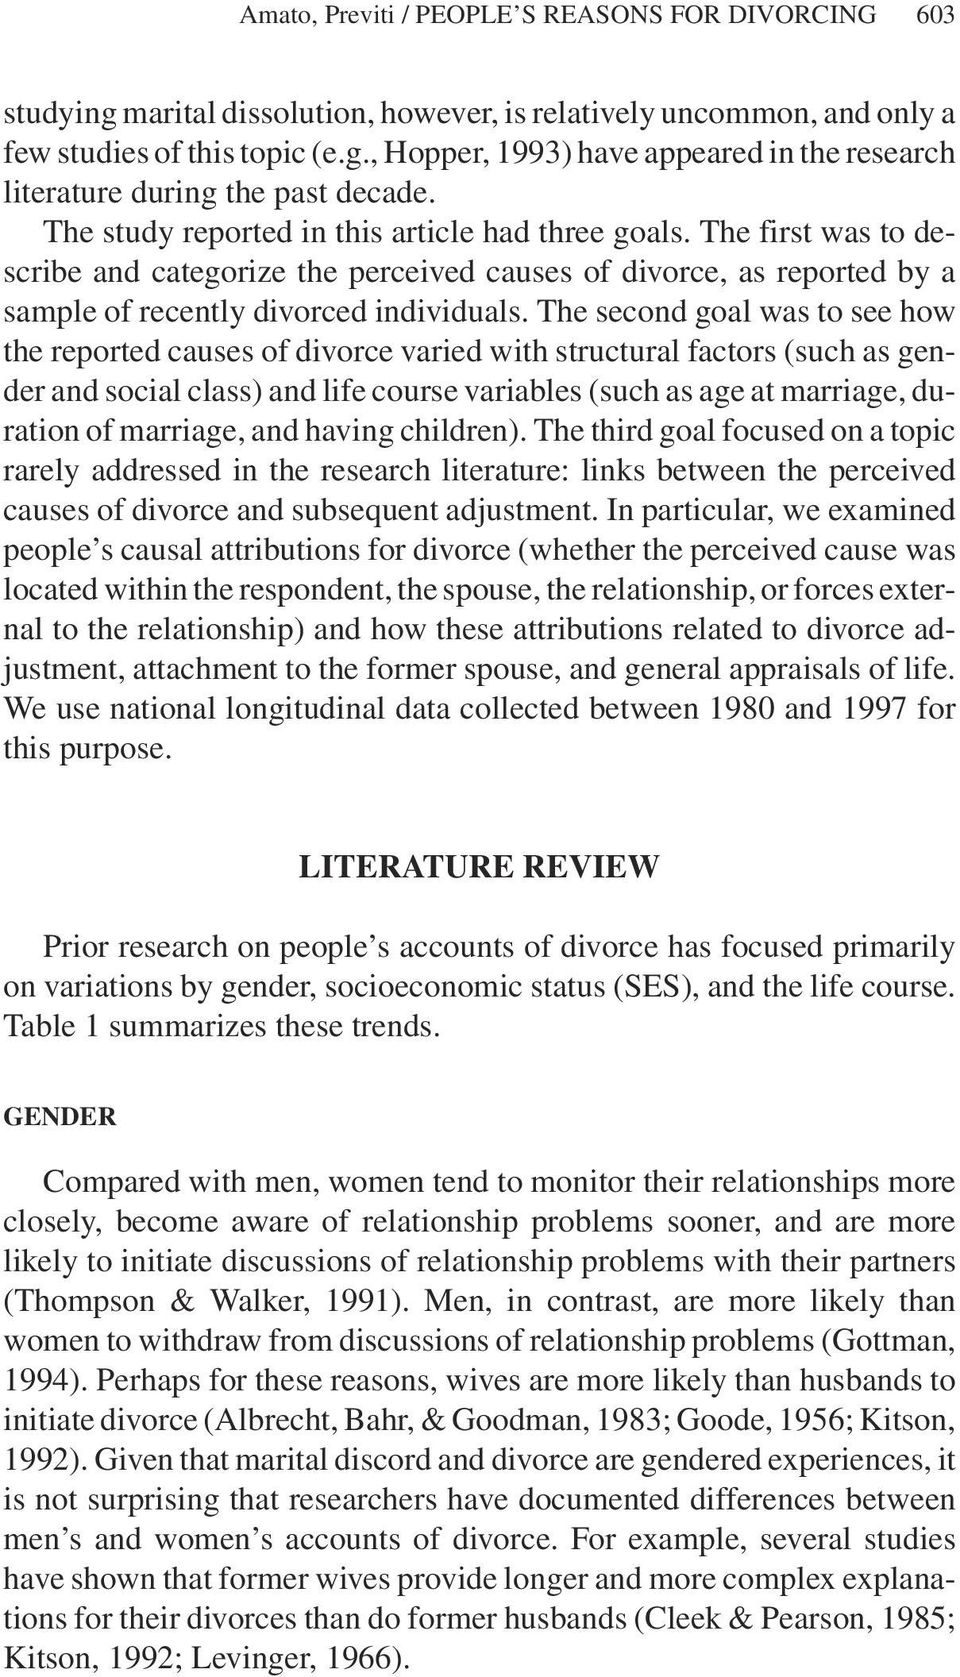 The second goal was to see how the reported causes of divorce varied with structural factors (such as gender and social class) and life course variables (such as age at marriage, duration of